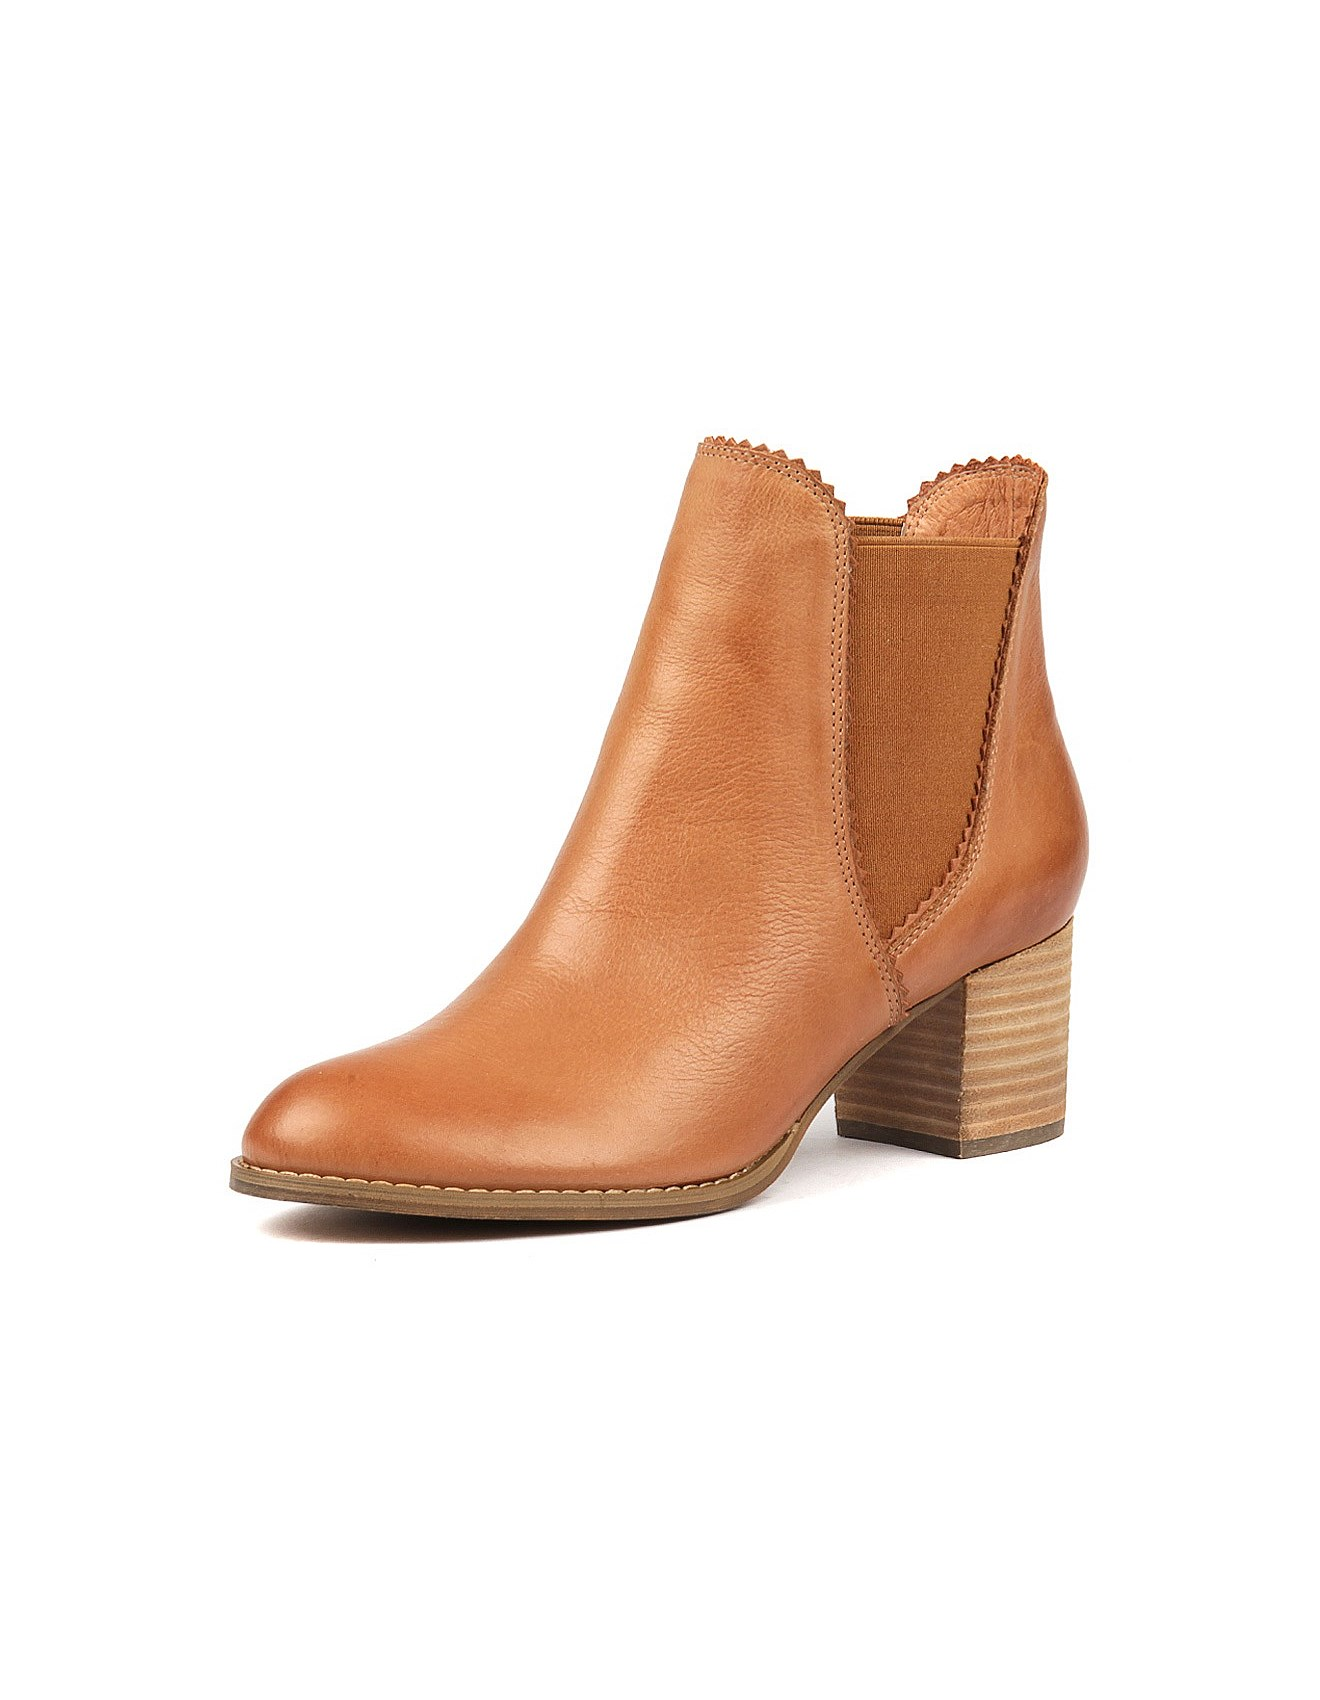 Remake Mary Paz Size 38 5 Tan Tobacco Brown Leather Ankle